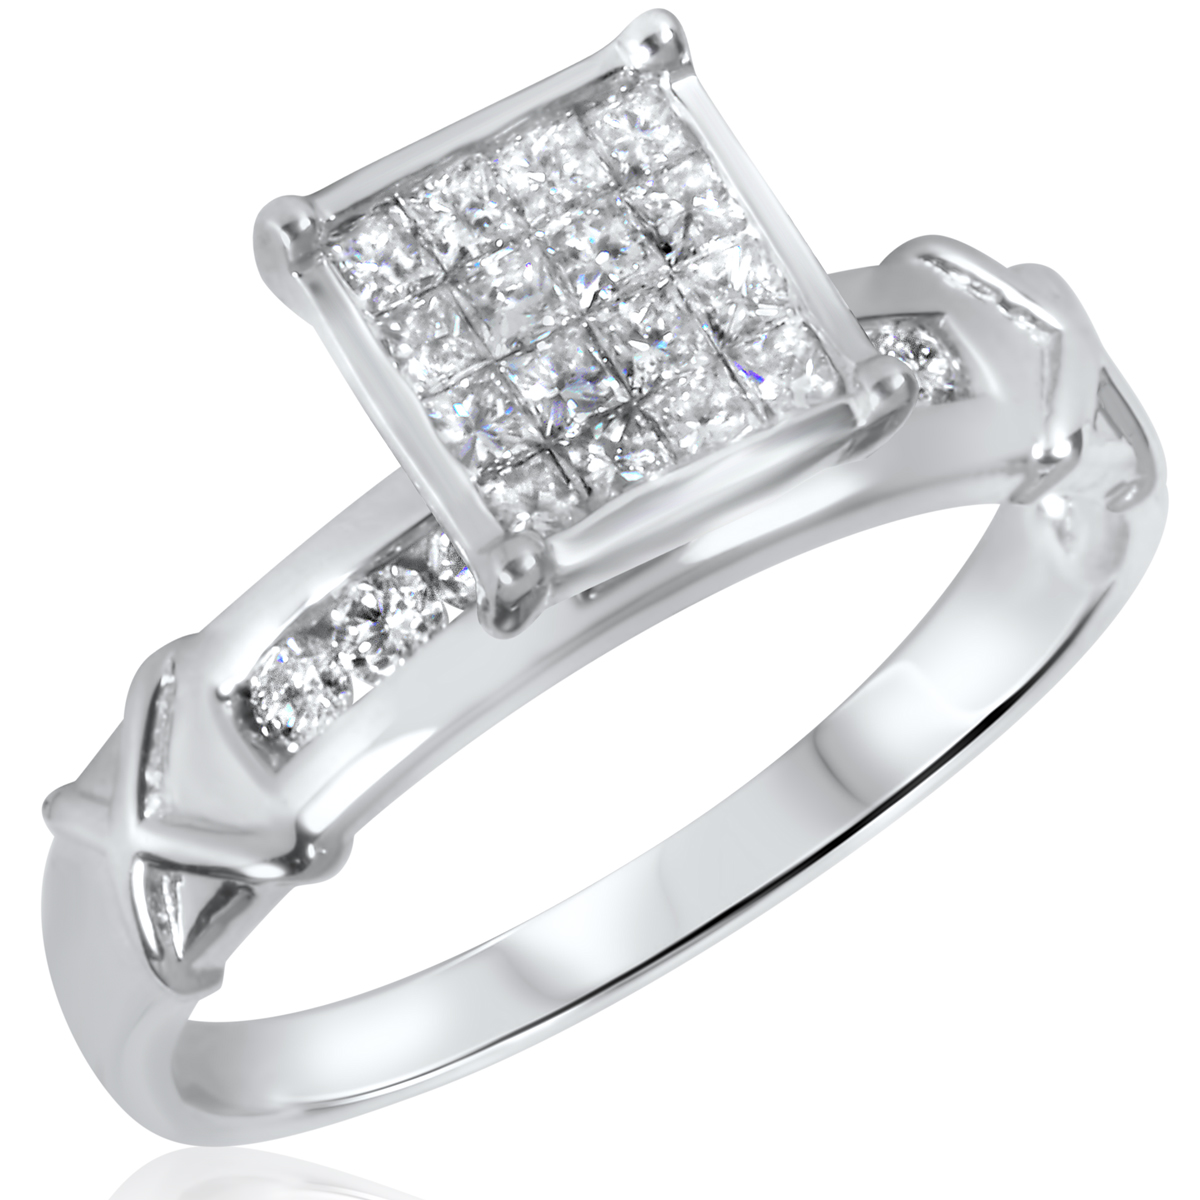 1/2 CT. T.W. Diamond Ladies Engagement Ring 10K White Gold- Size 8